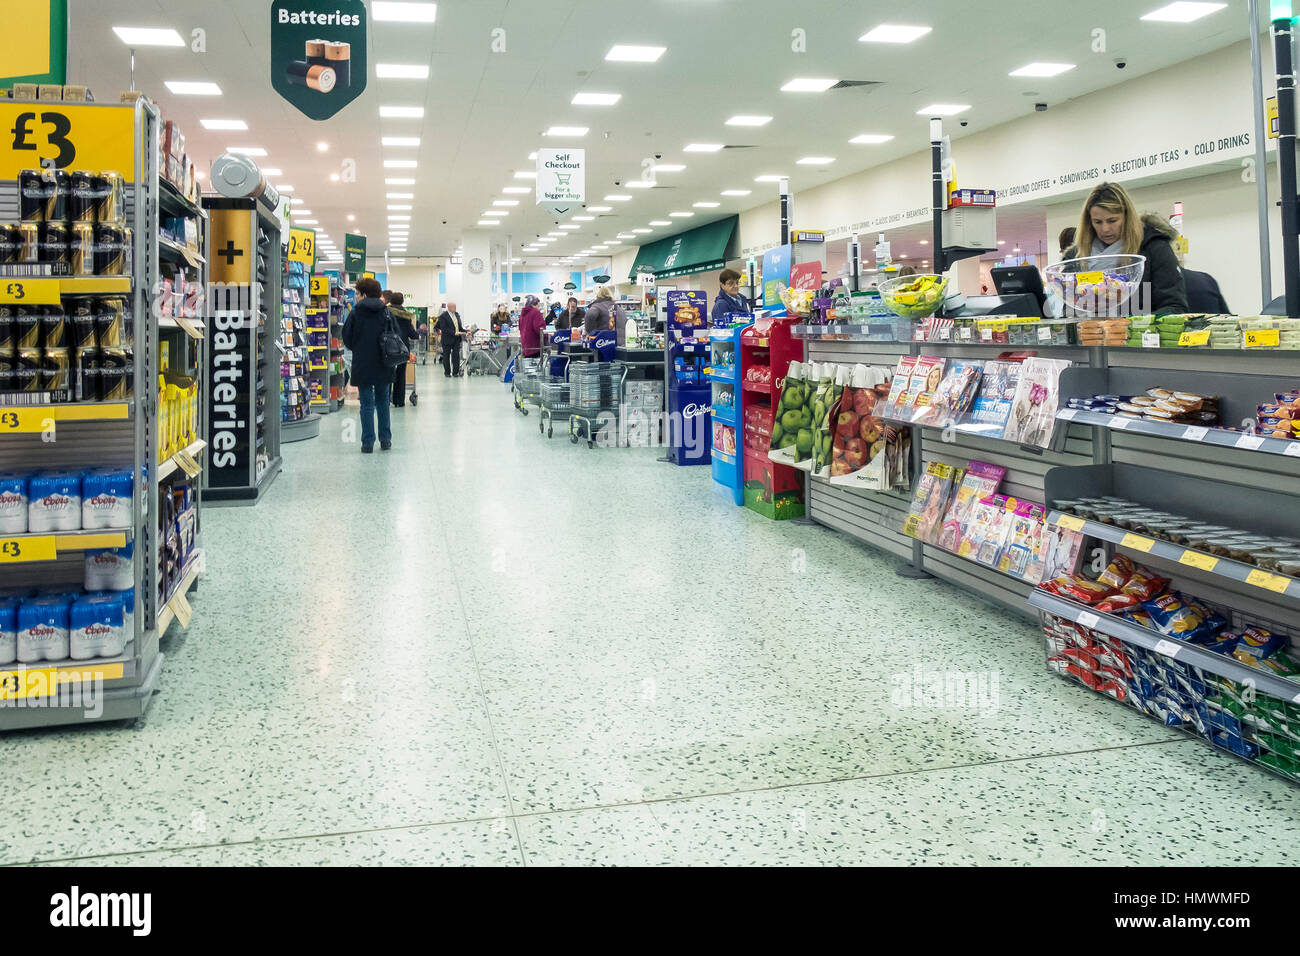 The interior of a Morrisons supermarket. - Stock Image